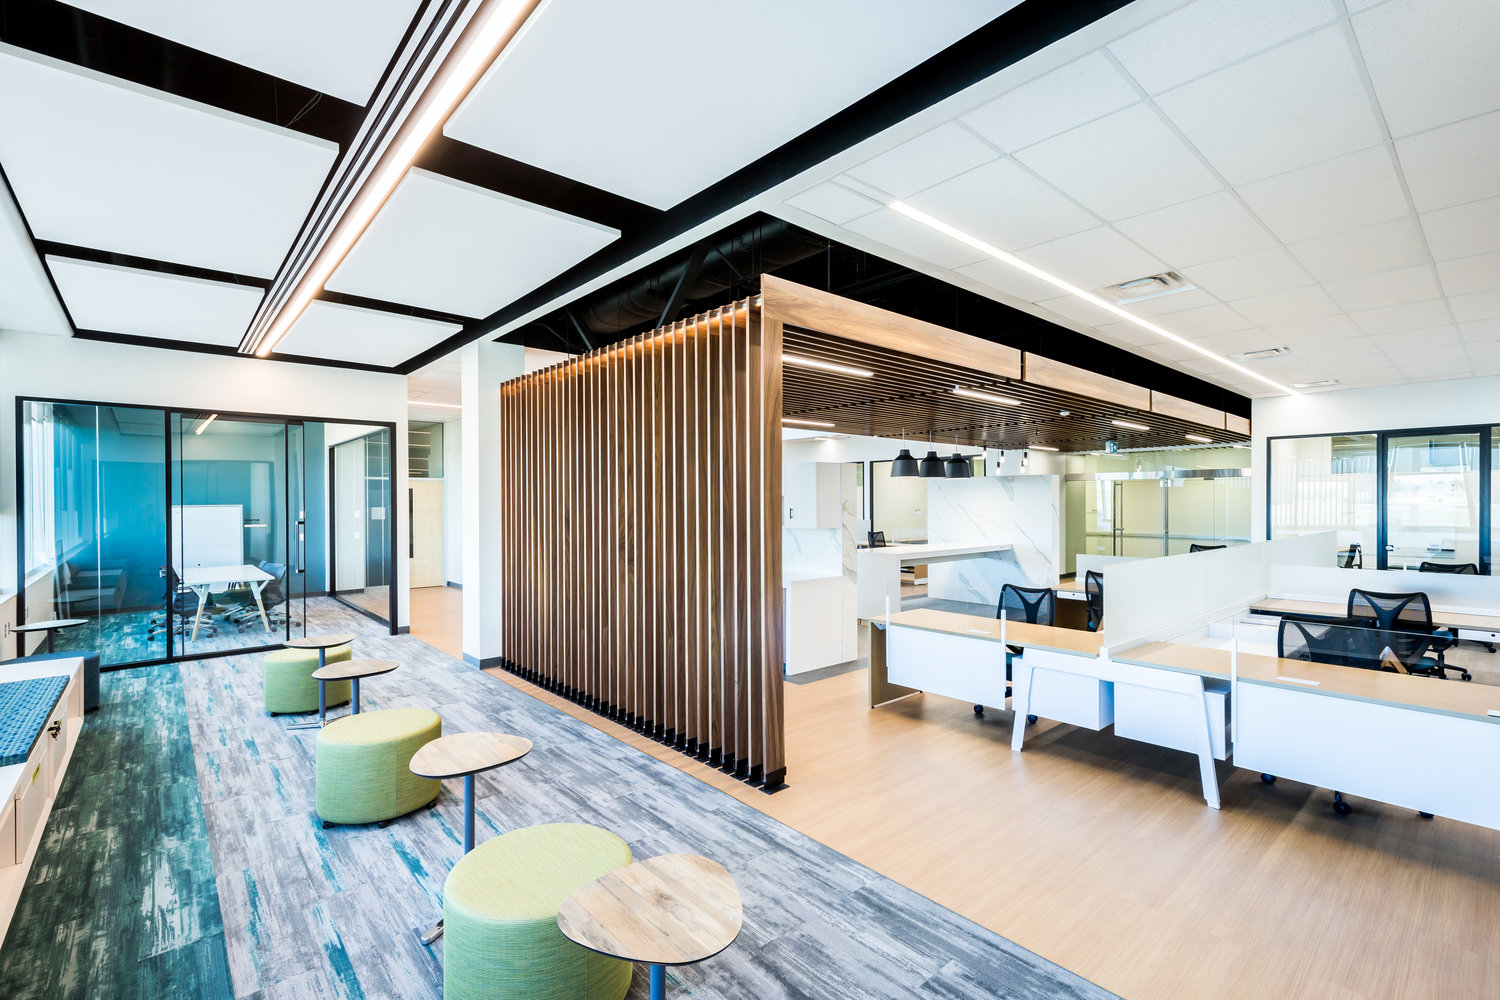 ... University's facilities group and key stakeholders to repurpose underutilized office space into a social innovation hub: the Trico Changemakers Studio.